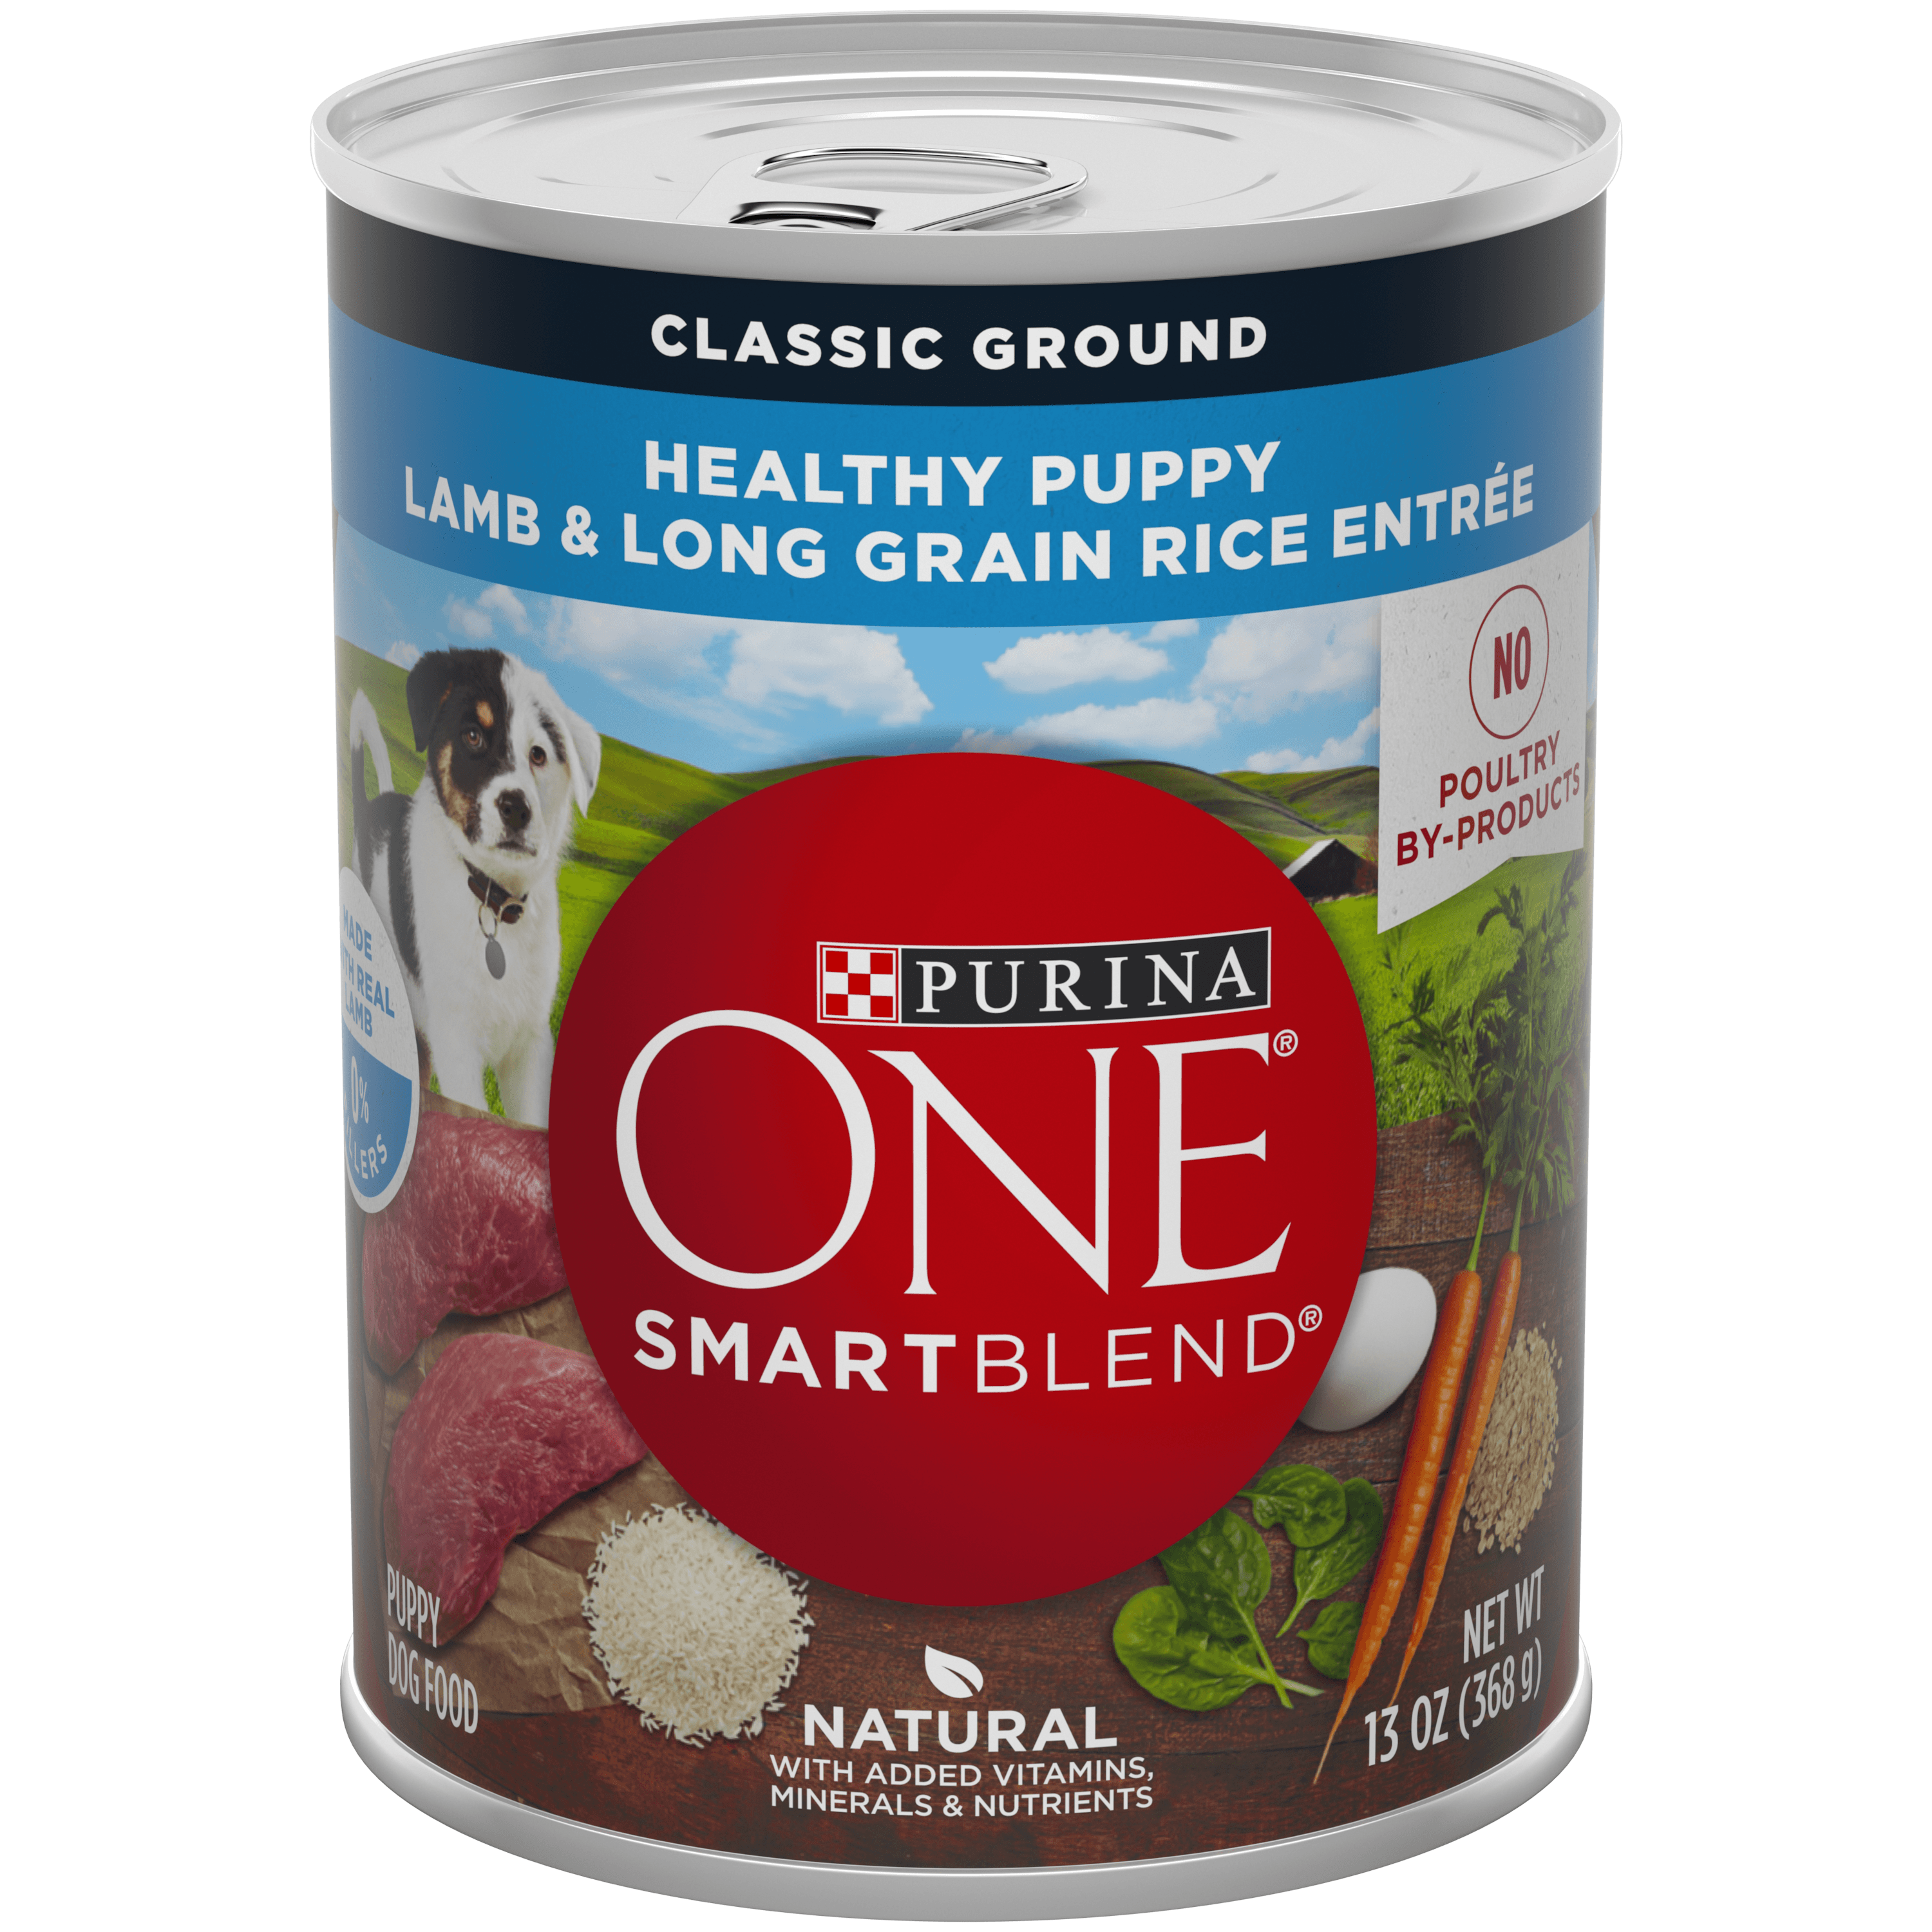 Purina ONE Natural Pate Wet Puppy Food; SmartBlend Healthy Puppy Lamb & Long Grain Rice Entree - 13 oz. Can